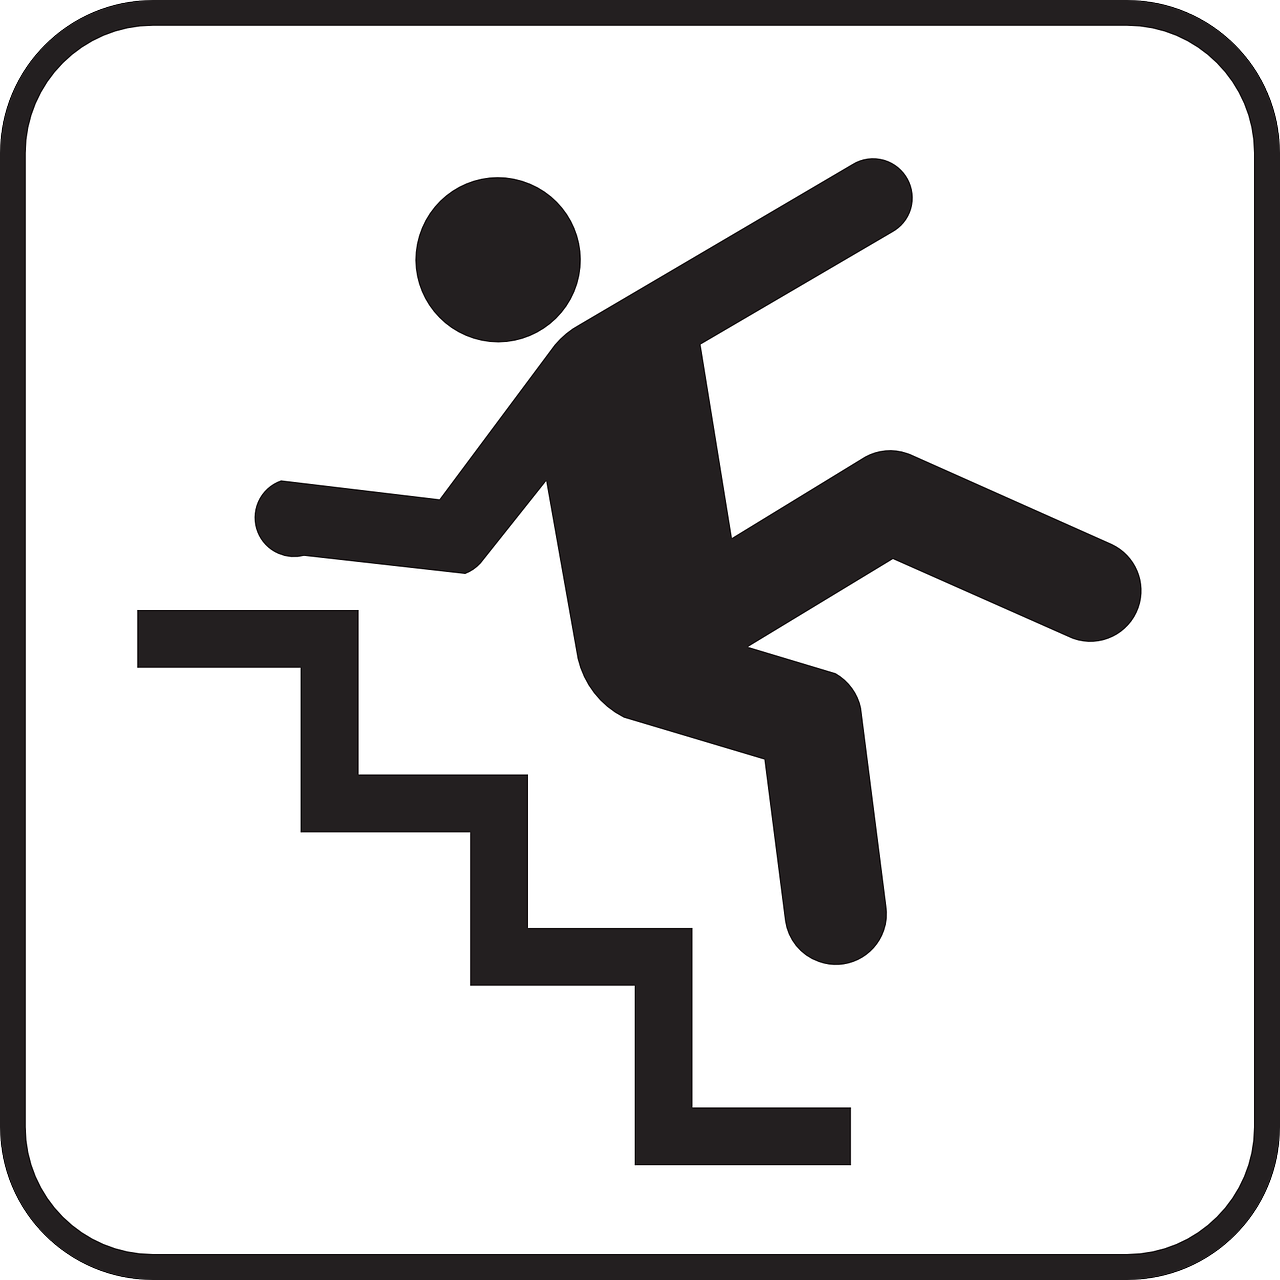 Black and white clipart falling down stairs clip art freeuse library Falling,tripping,down,stairs,staircase - free photo from needpix.com clip art freeuse library